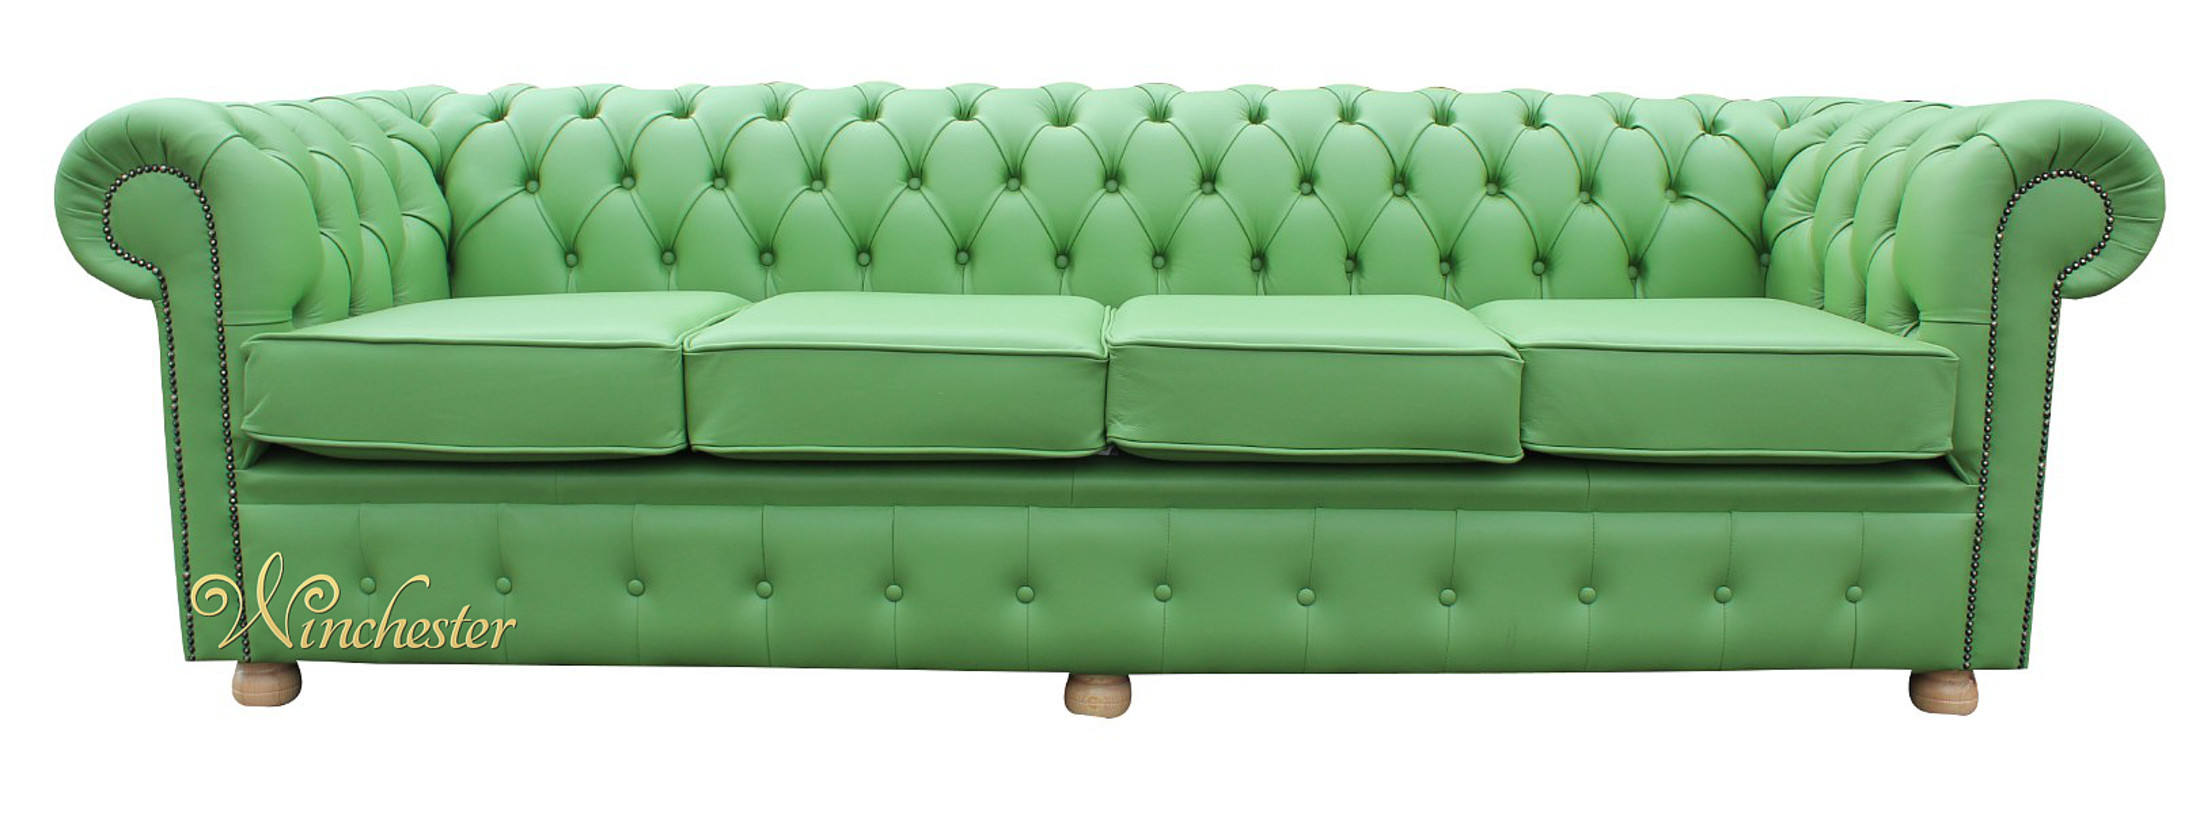 ... Chesterfield 4 Seater Sofa Settee Green Apple Leather